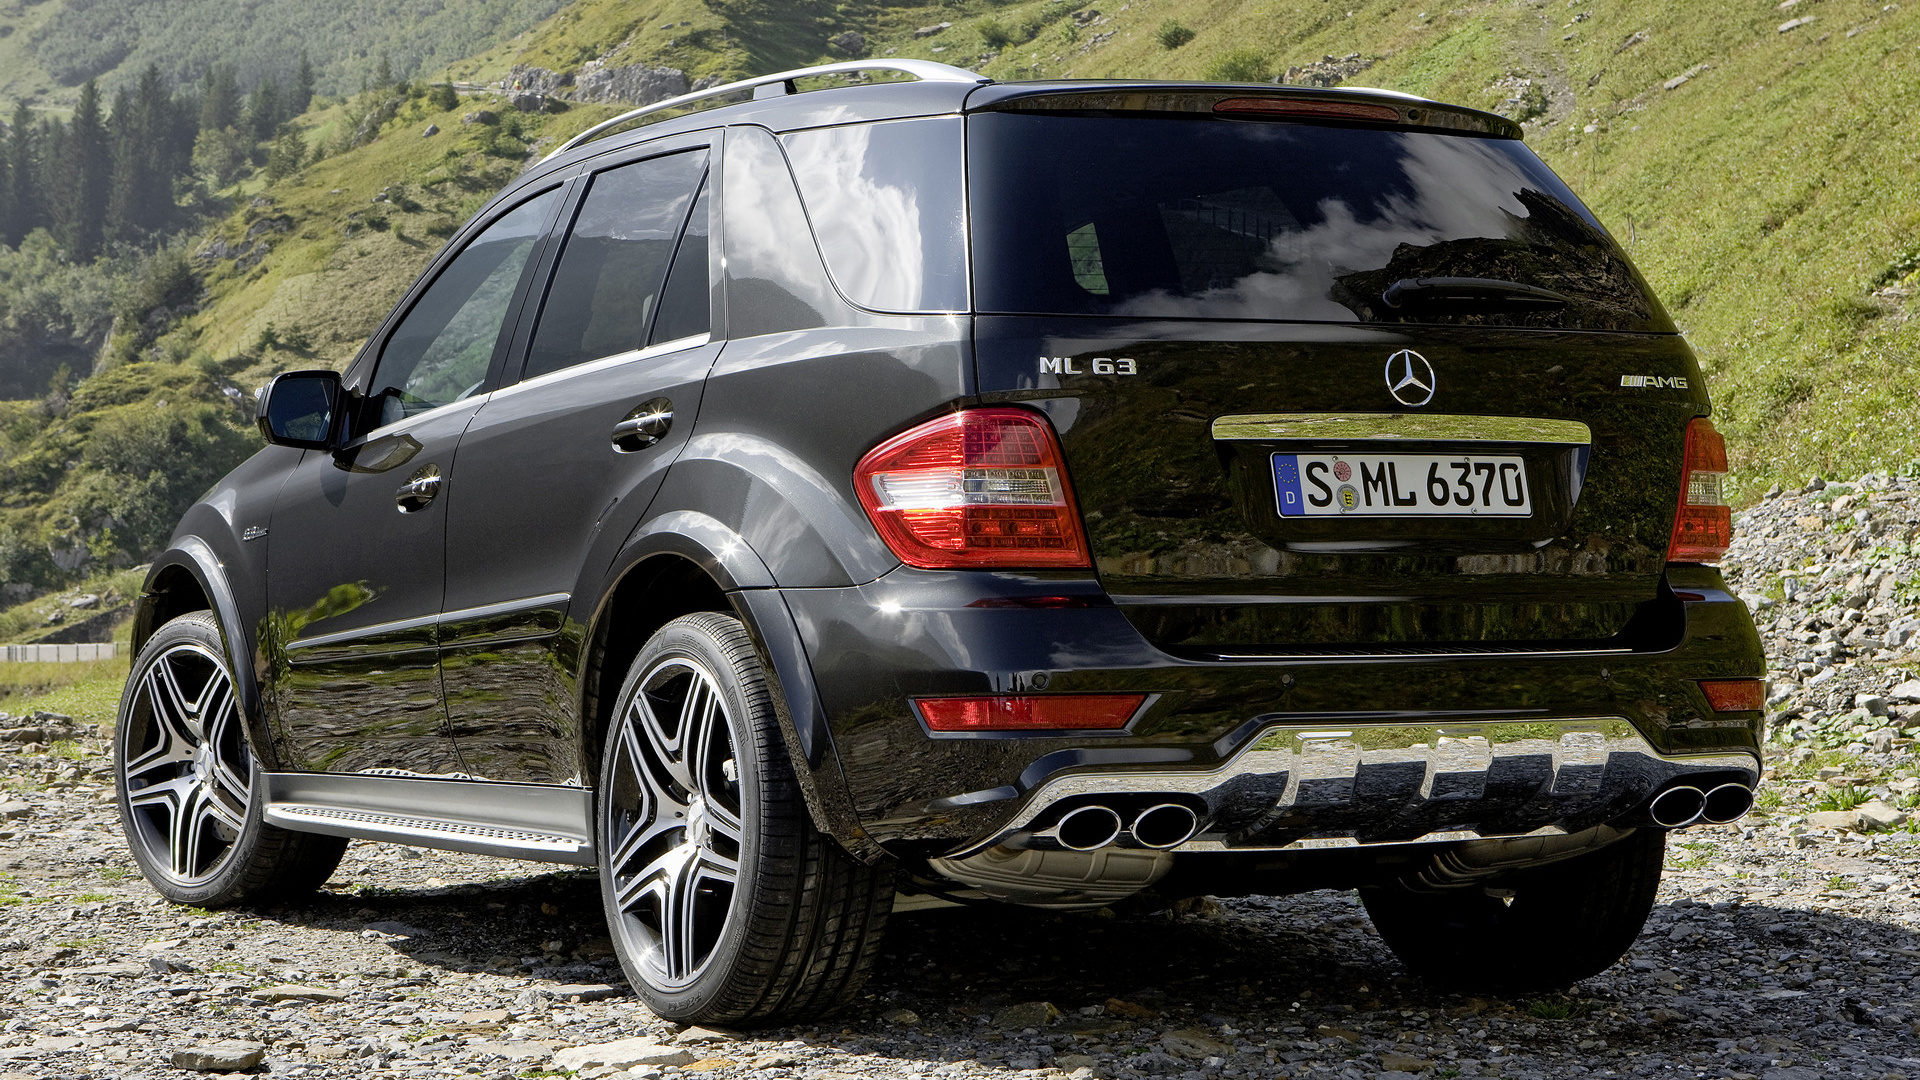 2009 mercedes benz ml 63 amg performance studio. Black Bedroom Furniture Sets. Home Design Ideas